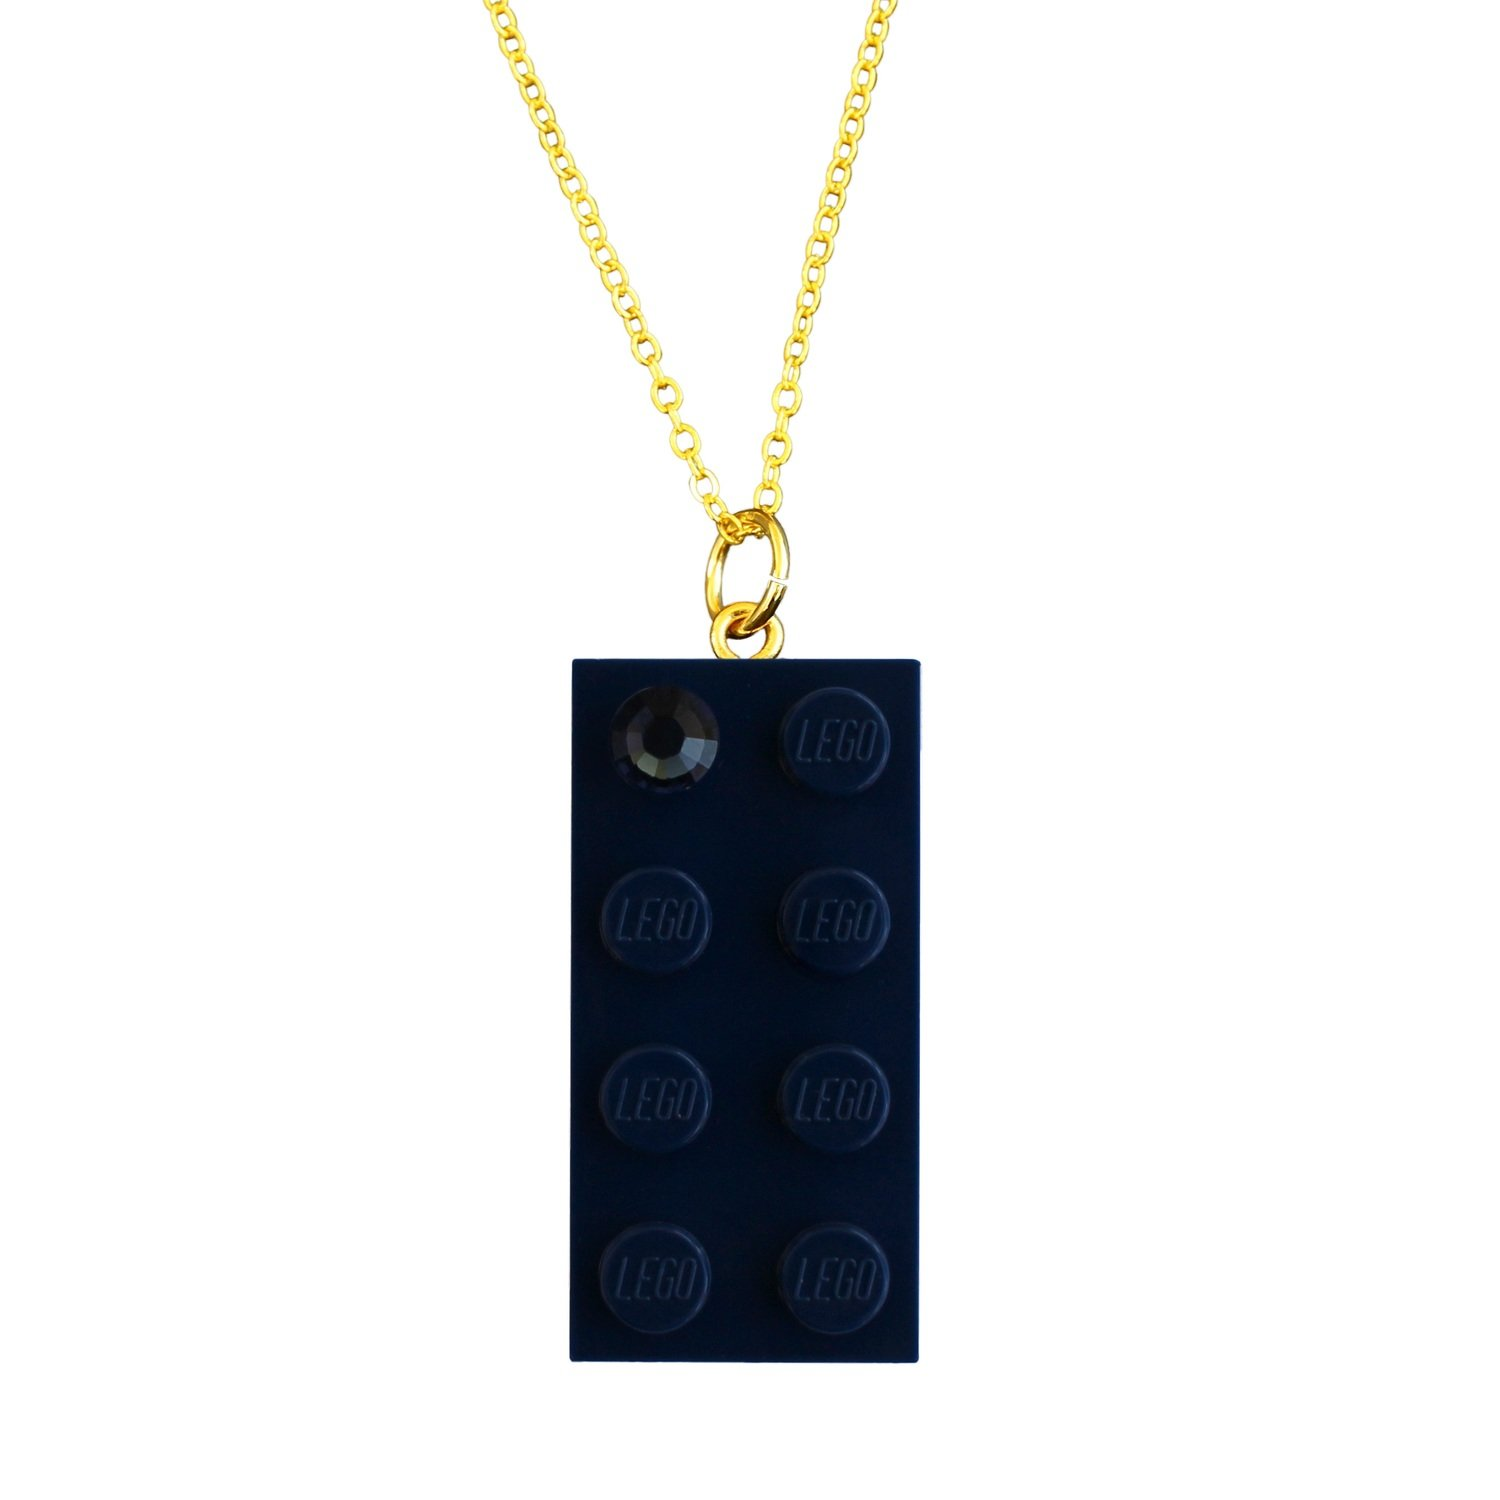 "Navy Blue LEGO® brick 2x4 with a Blue SWAROVSKI® crystal on a Gold plated trace chain (18"" or 24"")"